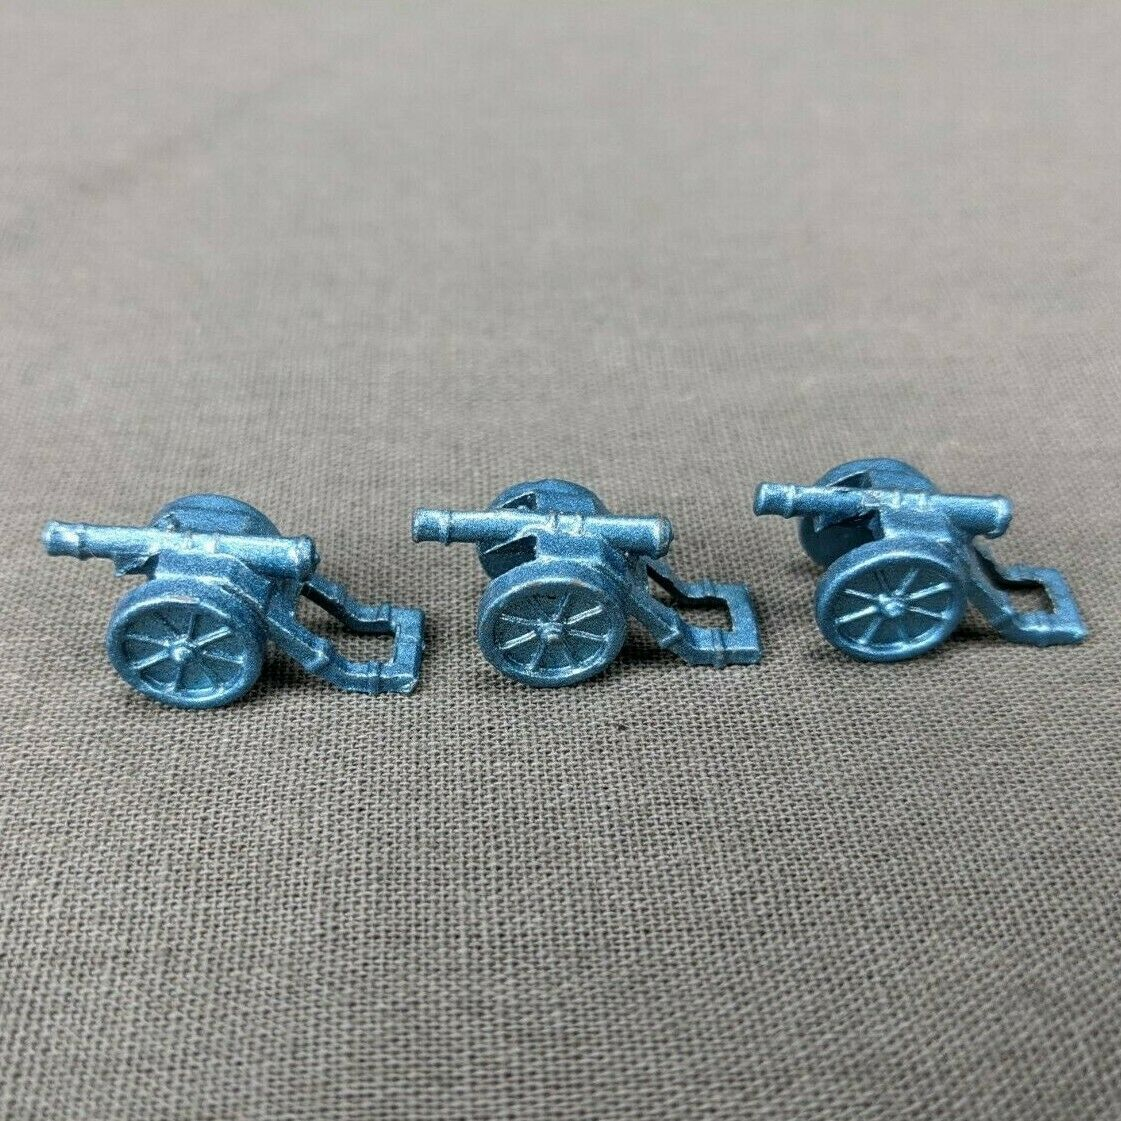 Primary image for Risk 40th Anniversary Edition Board Game Metal Cannons 3 Pieces Blue Army